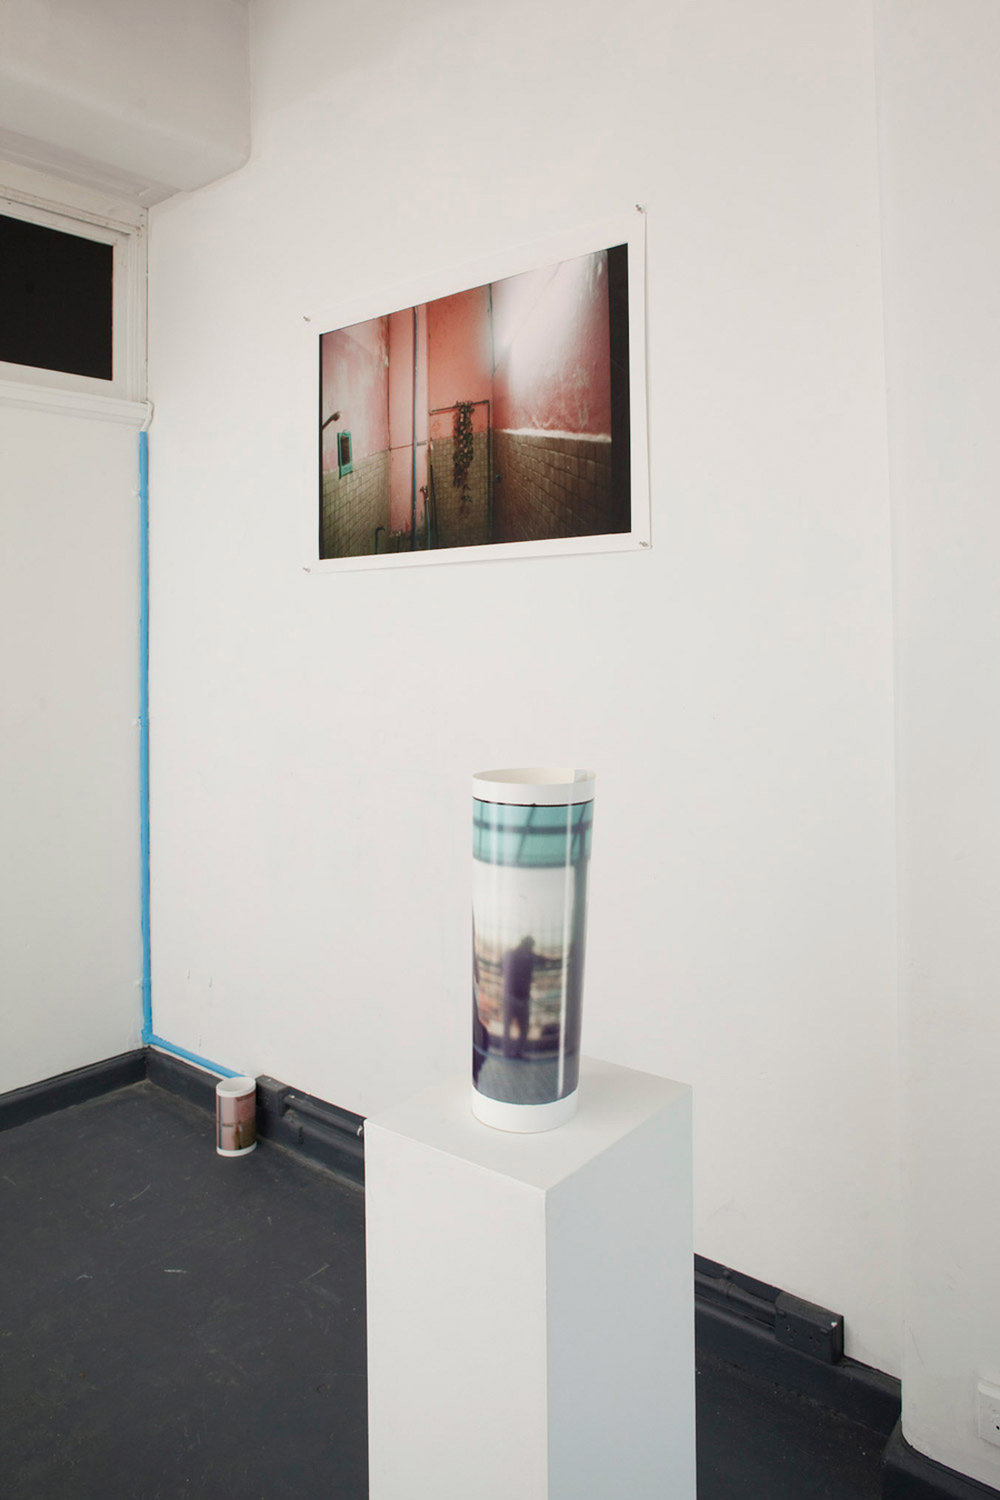 Some Sort of Split. 2011. Installation View. Blindside.